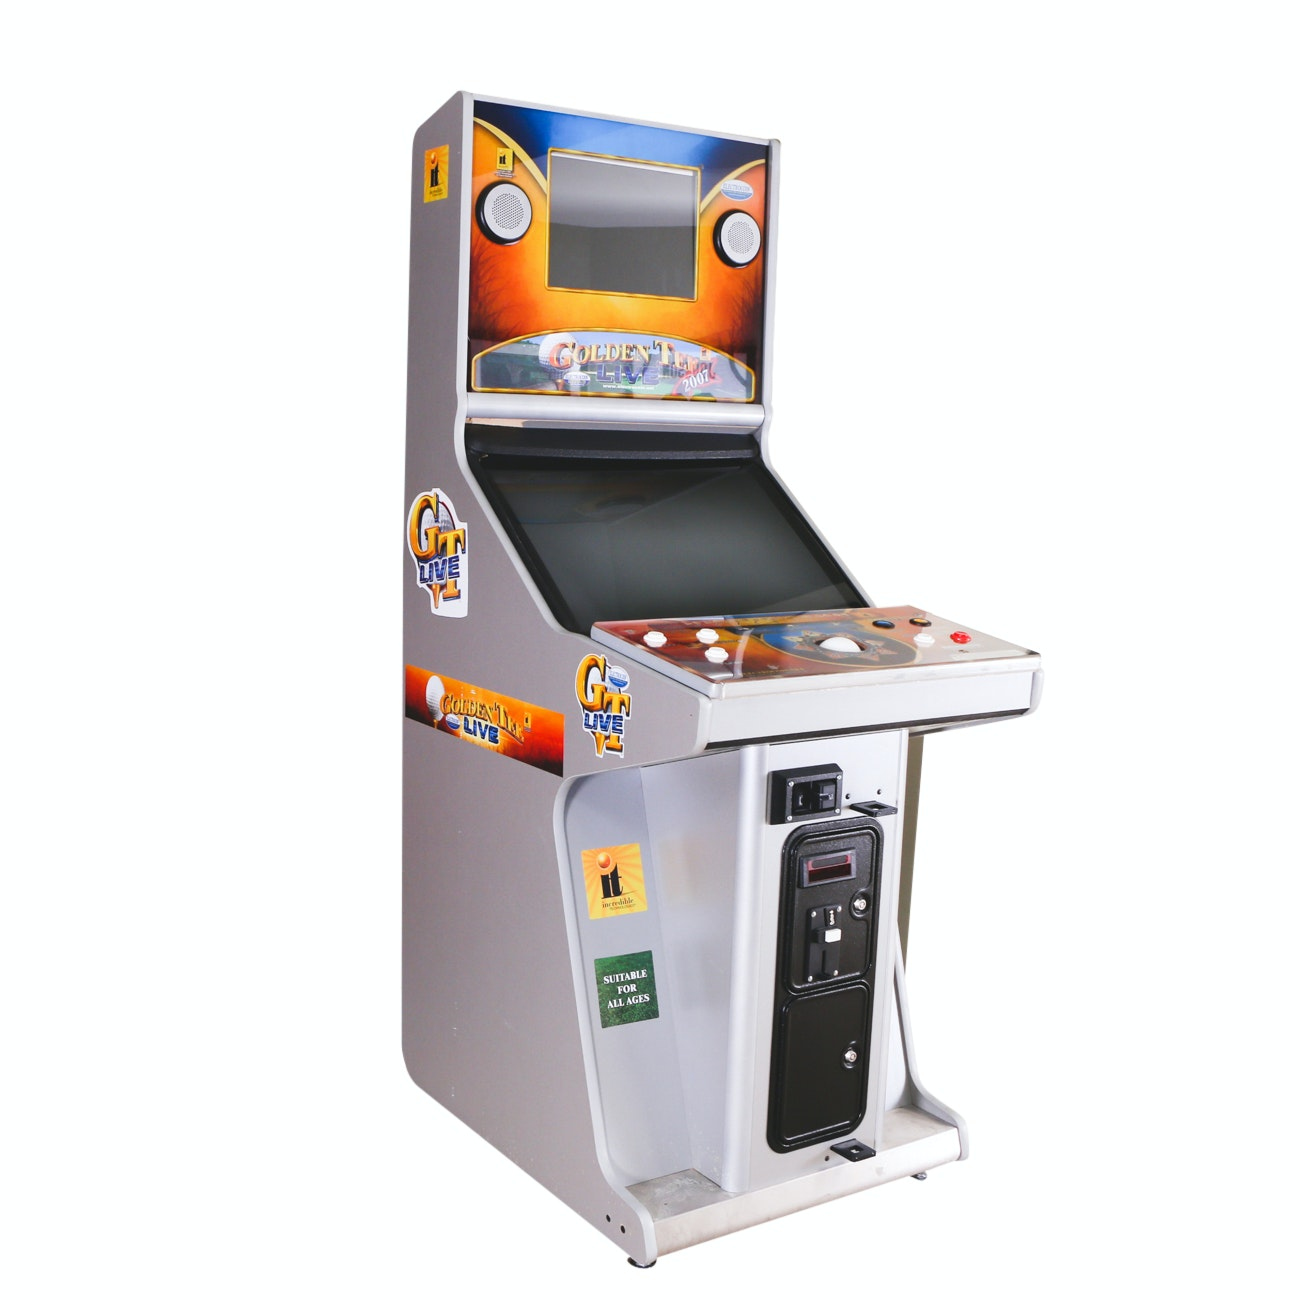 Golden Tee Live 2007 Arcade Game